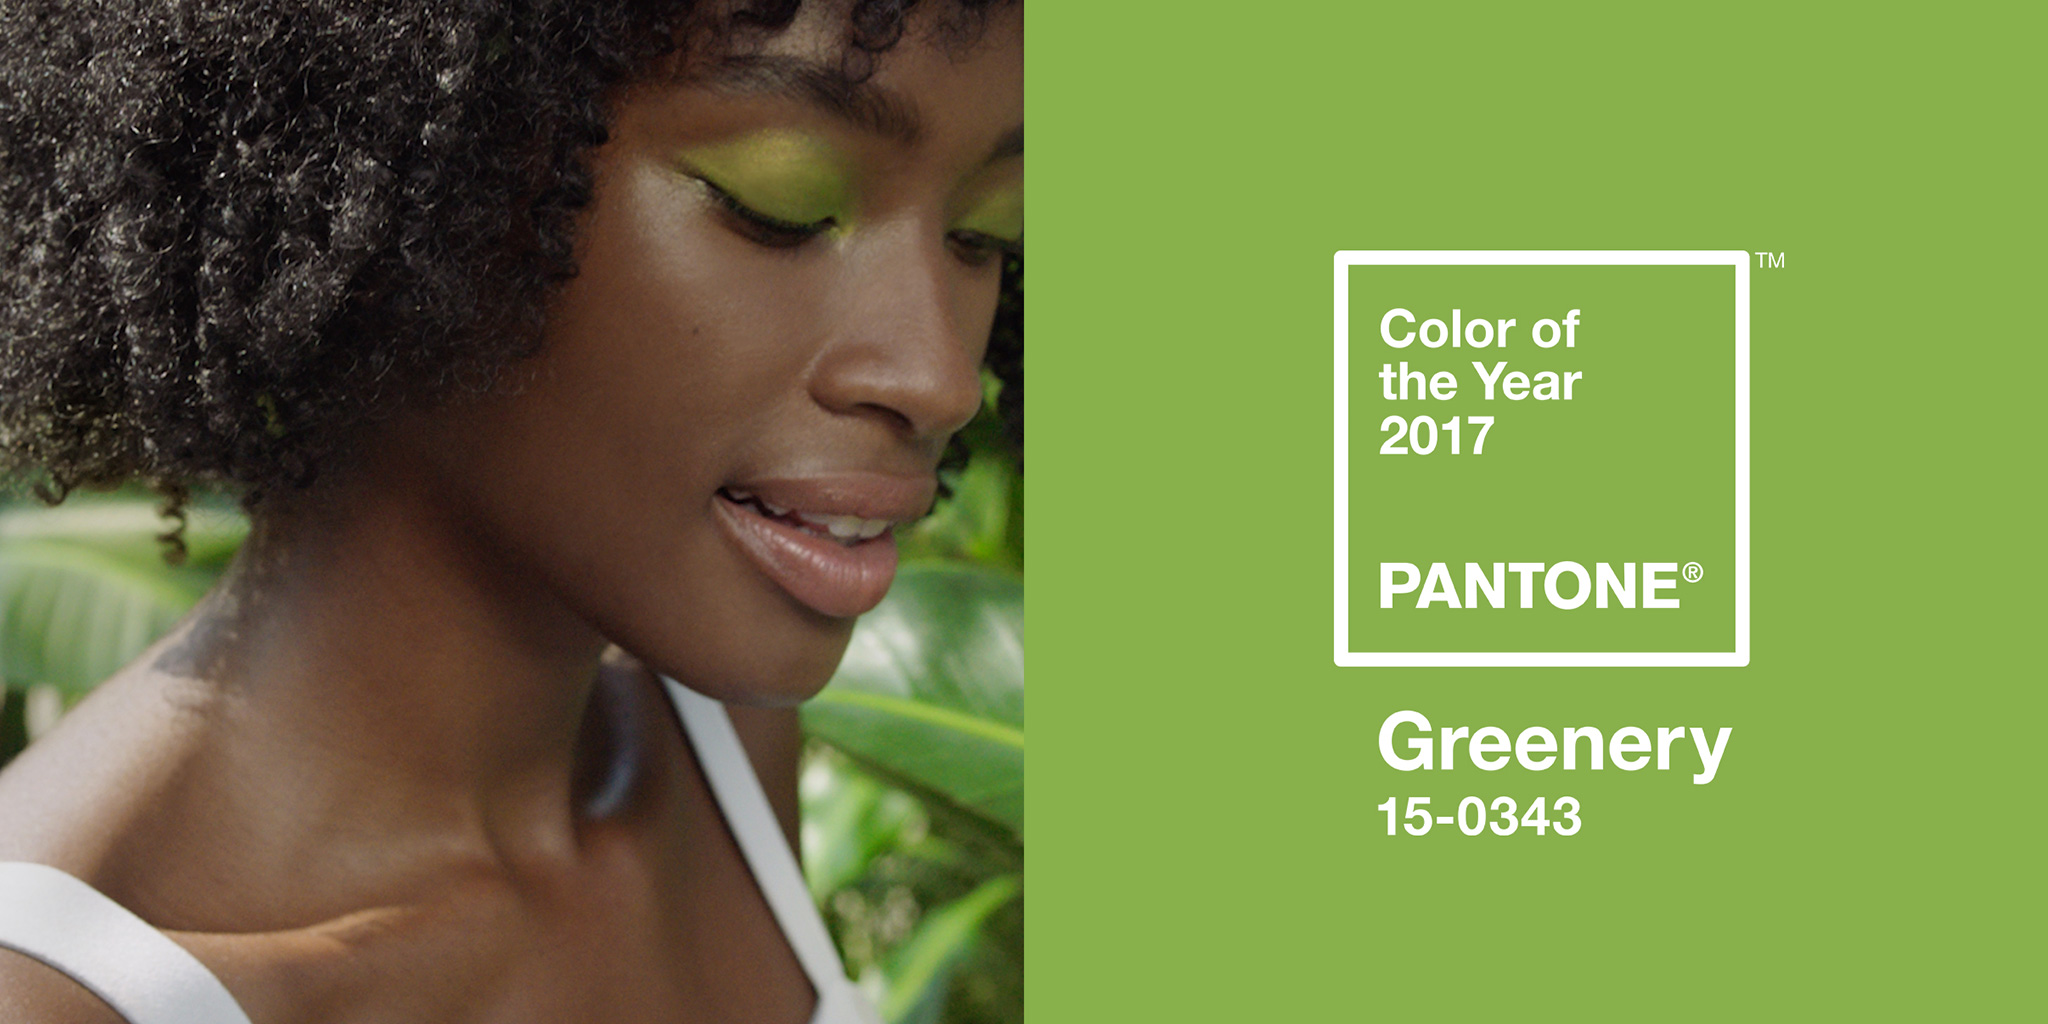 Pantone Color of the Year 2017: PANTONE 15-0343 Greenery